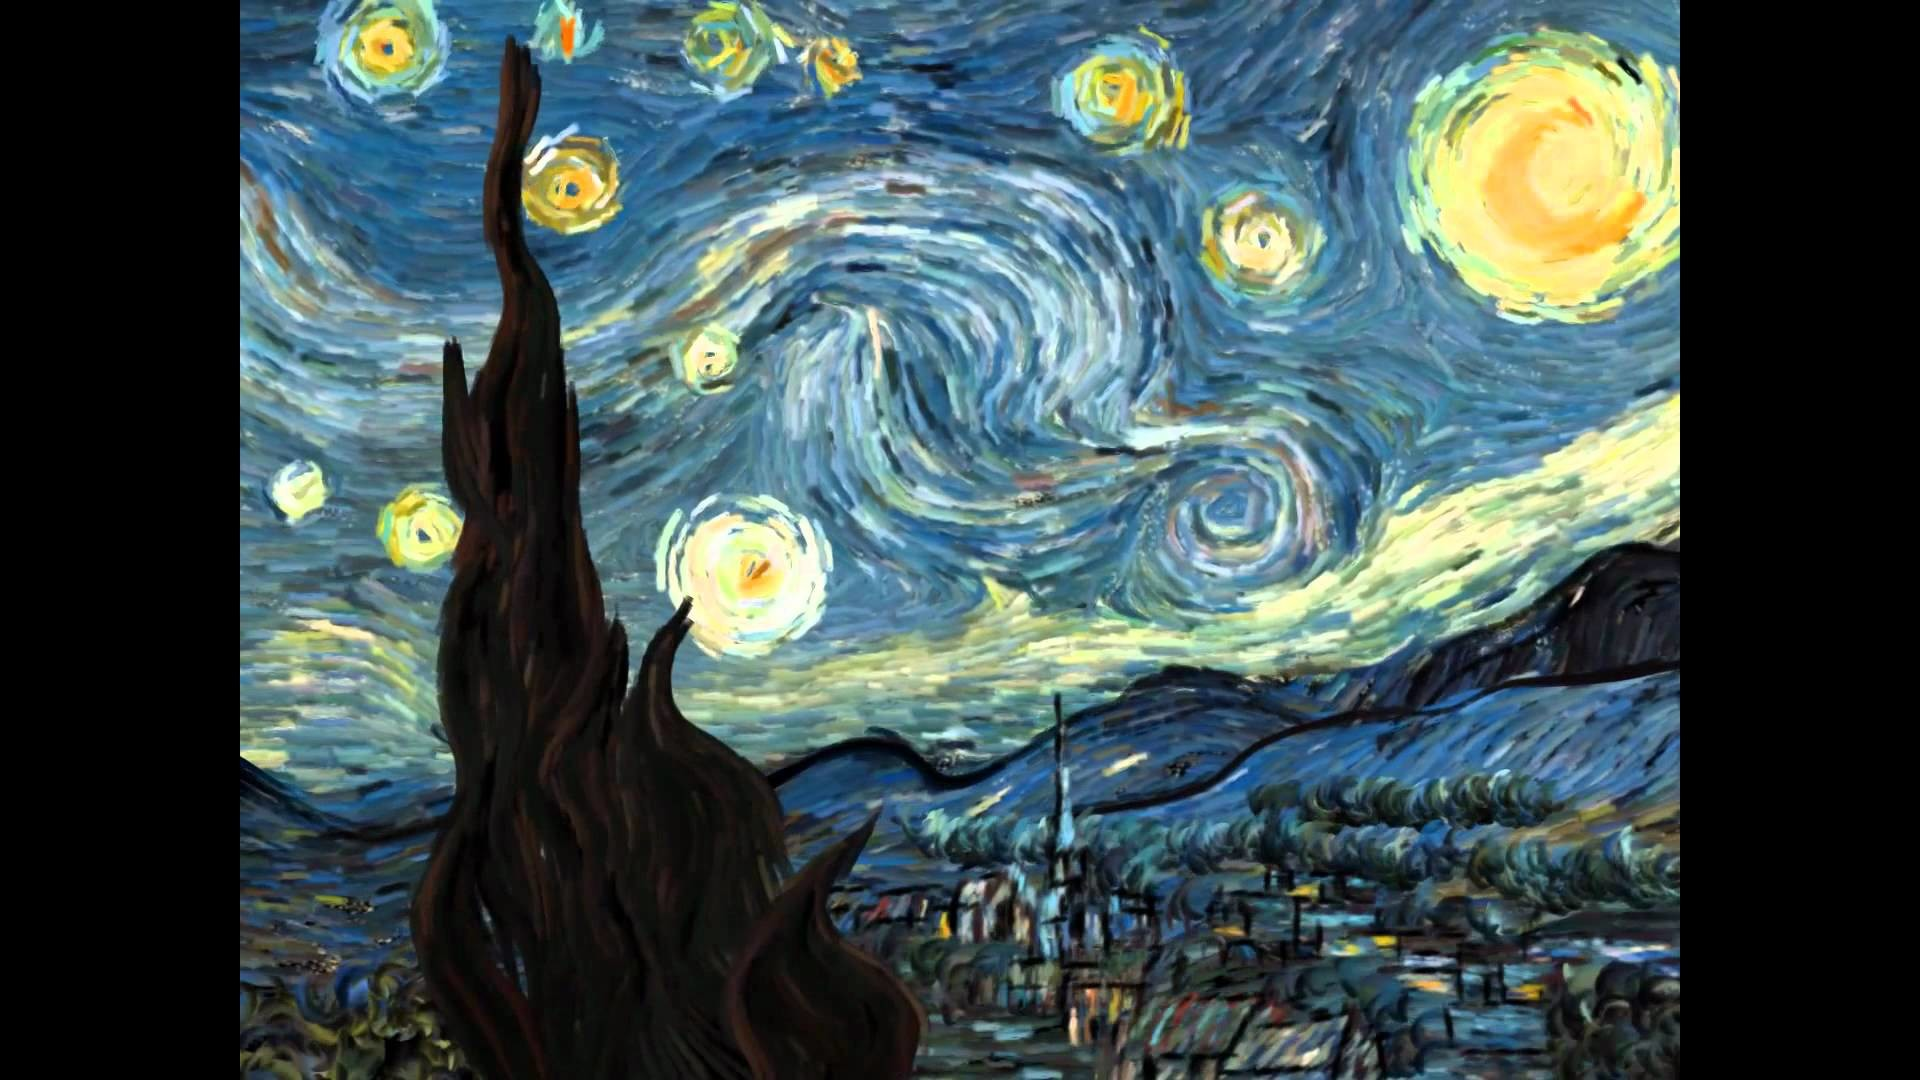 Van Gogh Starry Night Wallpaper Posted By Zoey Walker